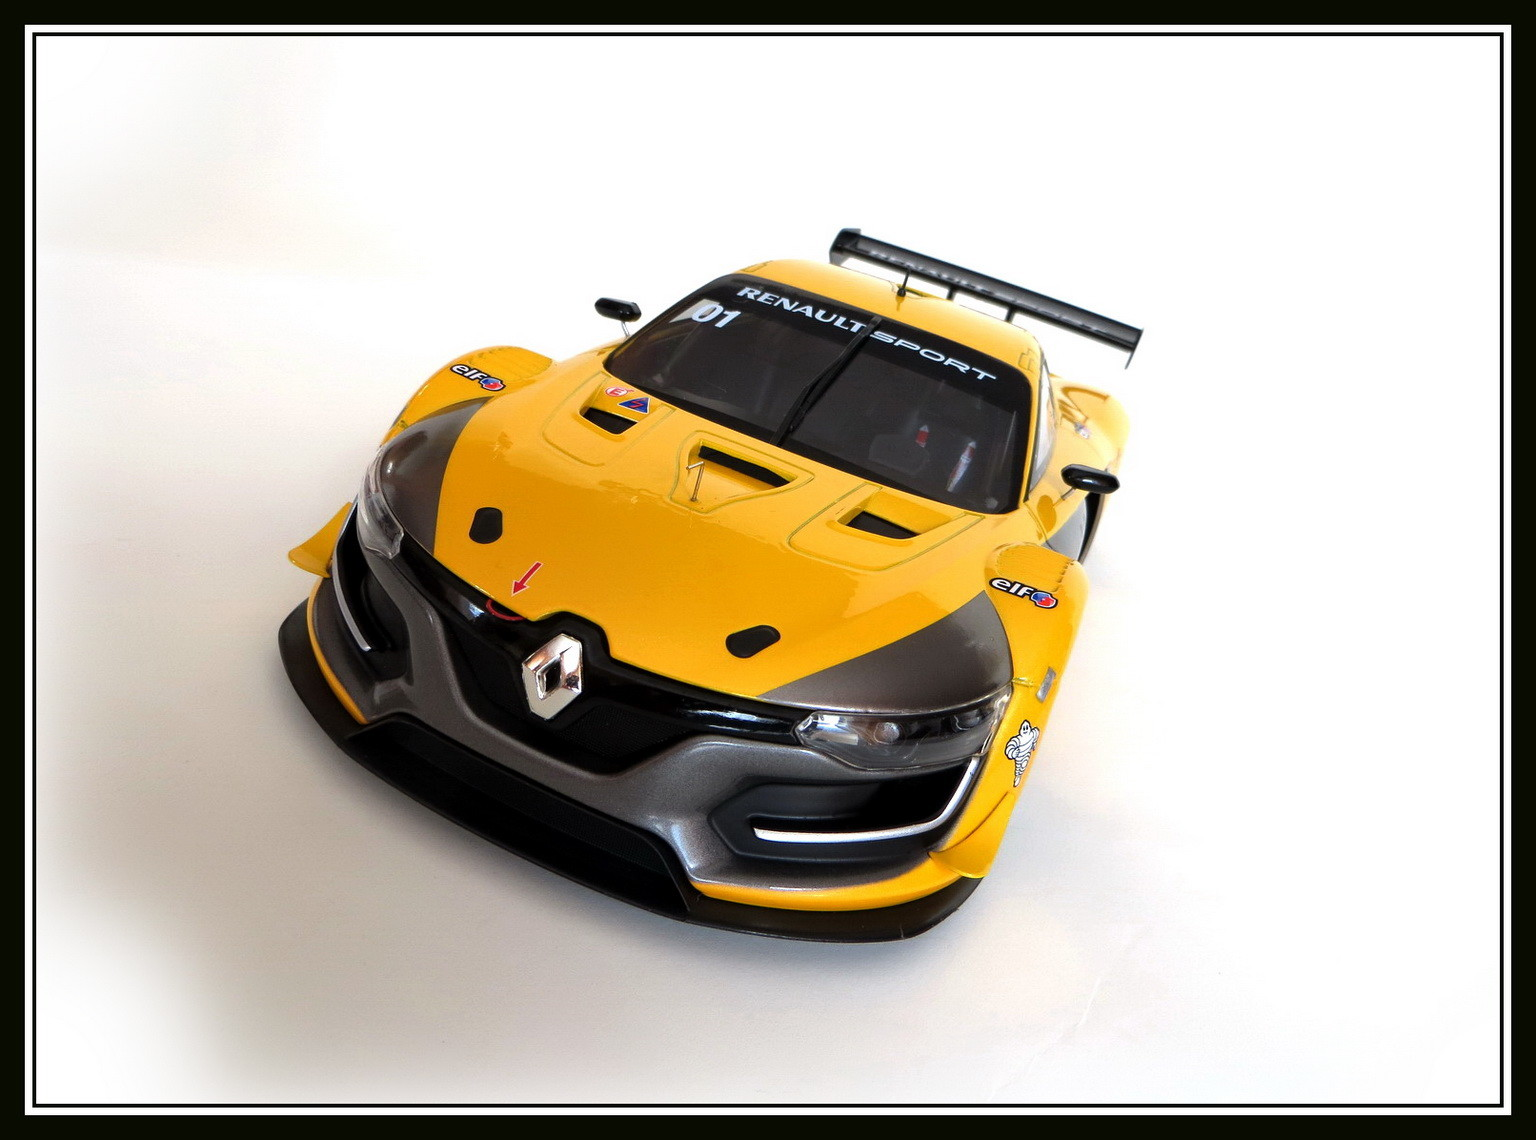 renault-rs 01-2015-025